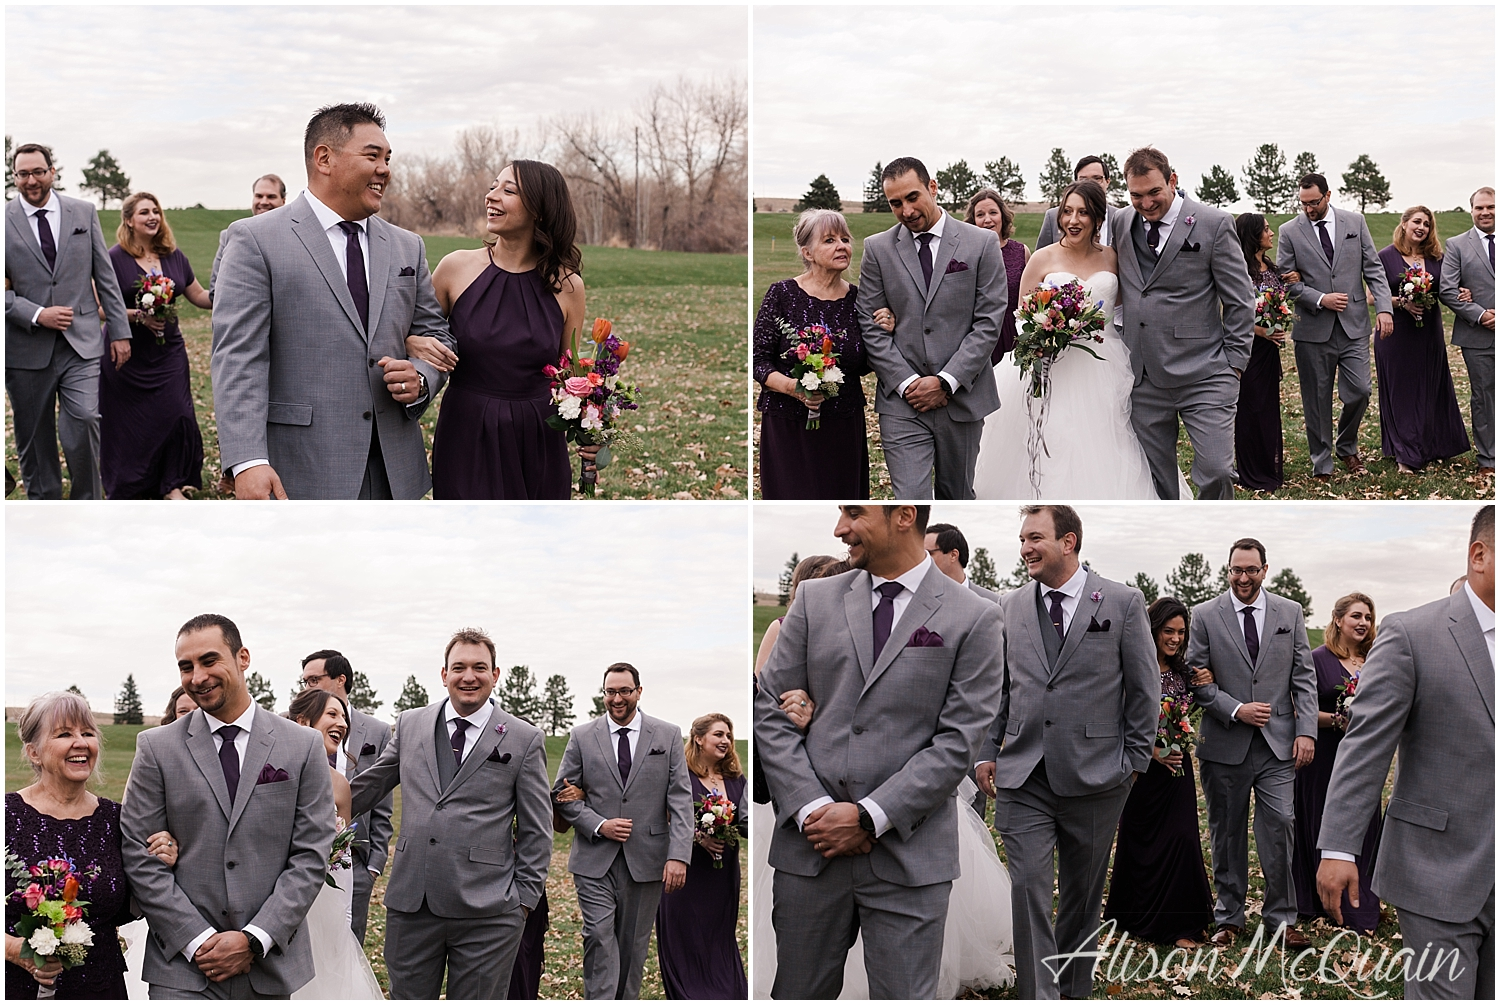 Zako_Wedding_ChatfieldFarm_Denver_Fall_2018_AlisonMcQuainPhotography_0036.jpg